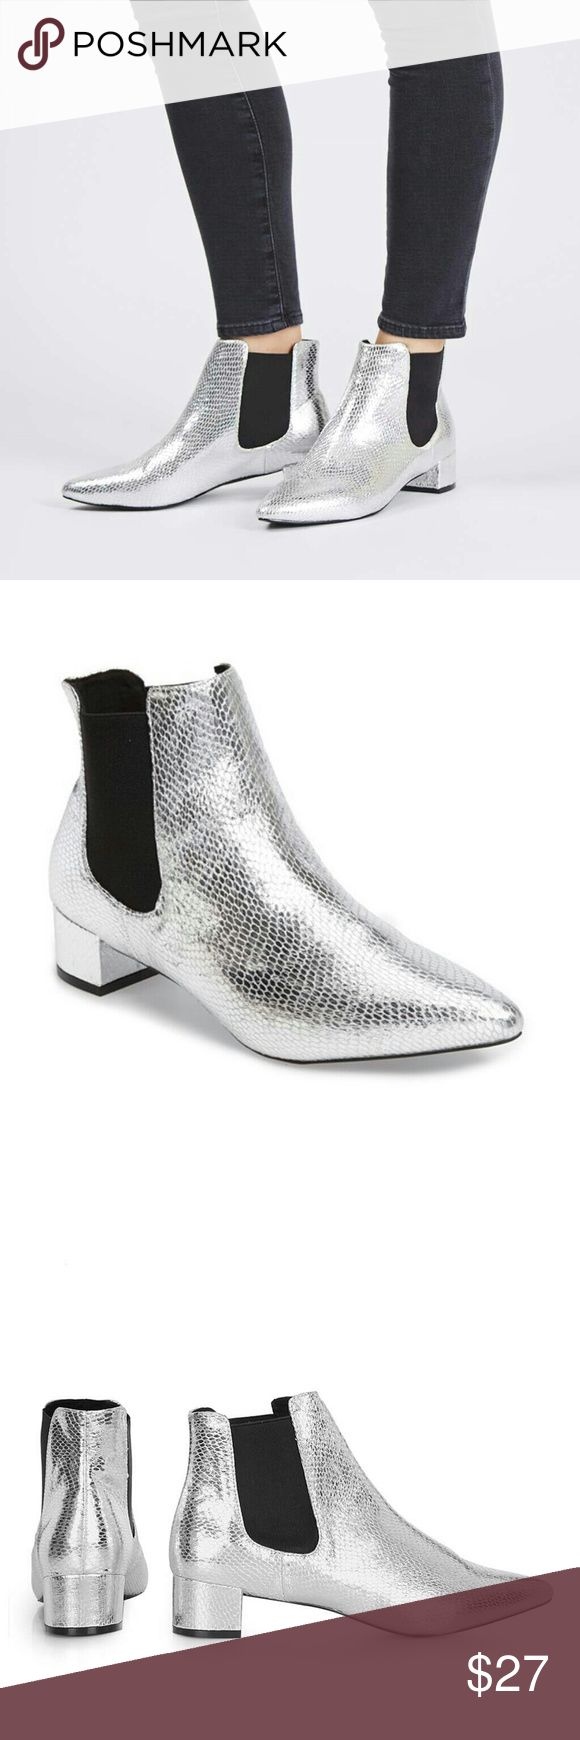 """TopShop Silver Chelsea KRAZY Pointed Ankle Booties Vertical goring panels and a modest block heel add authentic flair to a classic Chelsea boot crafted with a trend-right pointy toe.   - 1 1/2"""" heel  - 5 3/4"""" shaft   -Textile upper/textile and synthetic lining/synthetic sole  Women's Size 6.5 / Euro 37   Brand new! Topshop Shoes Ankle Boots & Booties"""